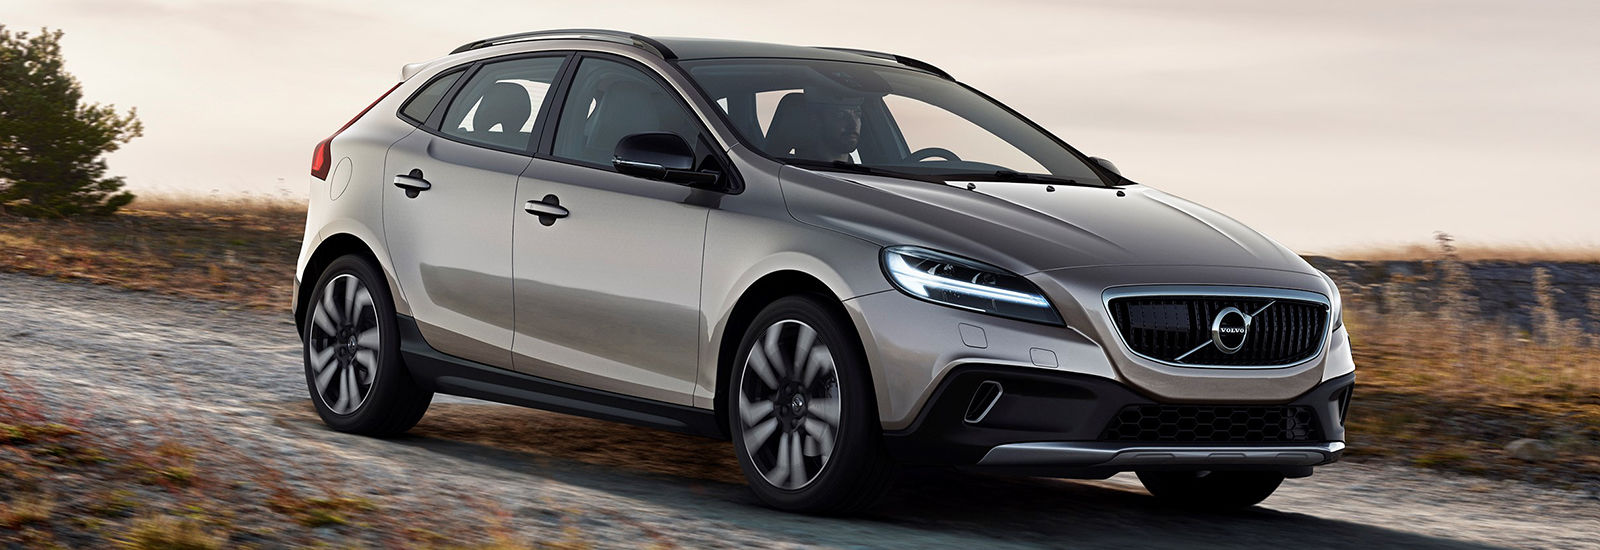 Volvo V40 facelift: what you need to know | carwow